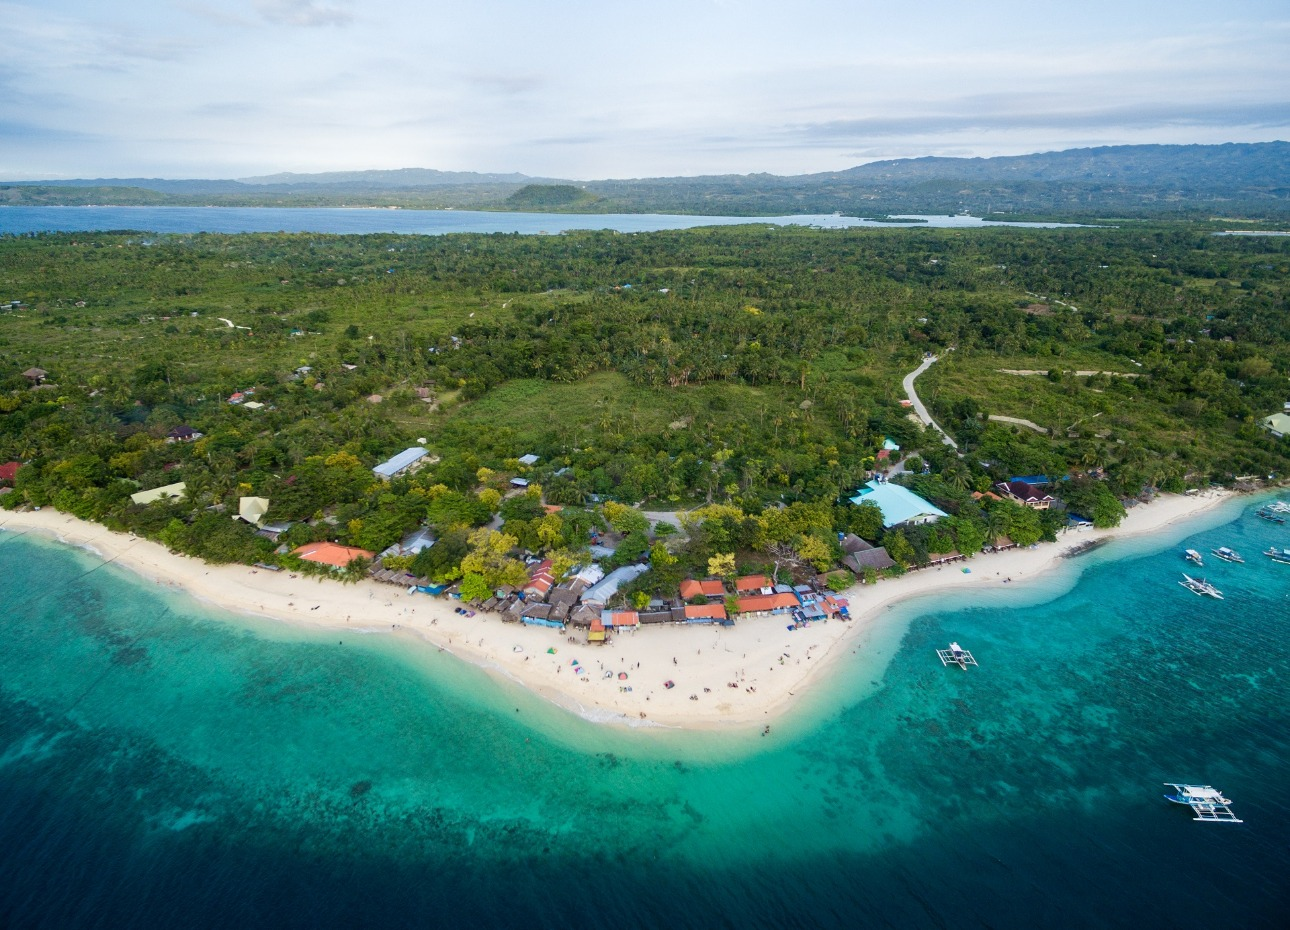 Philippines, Looking down on resort, image,